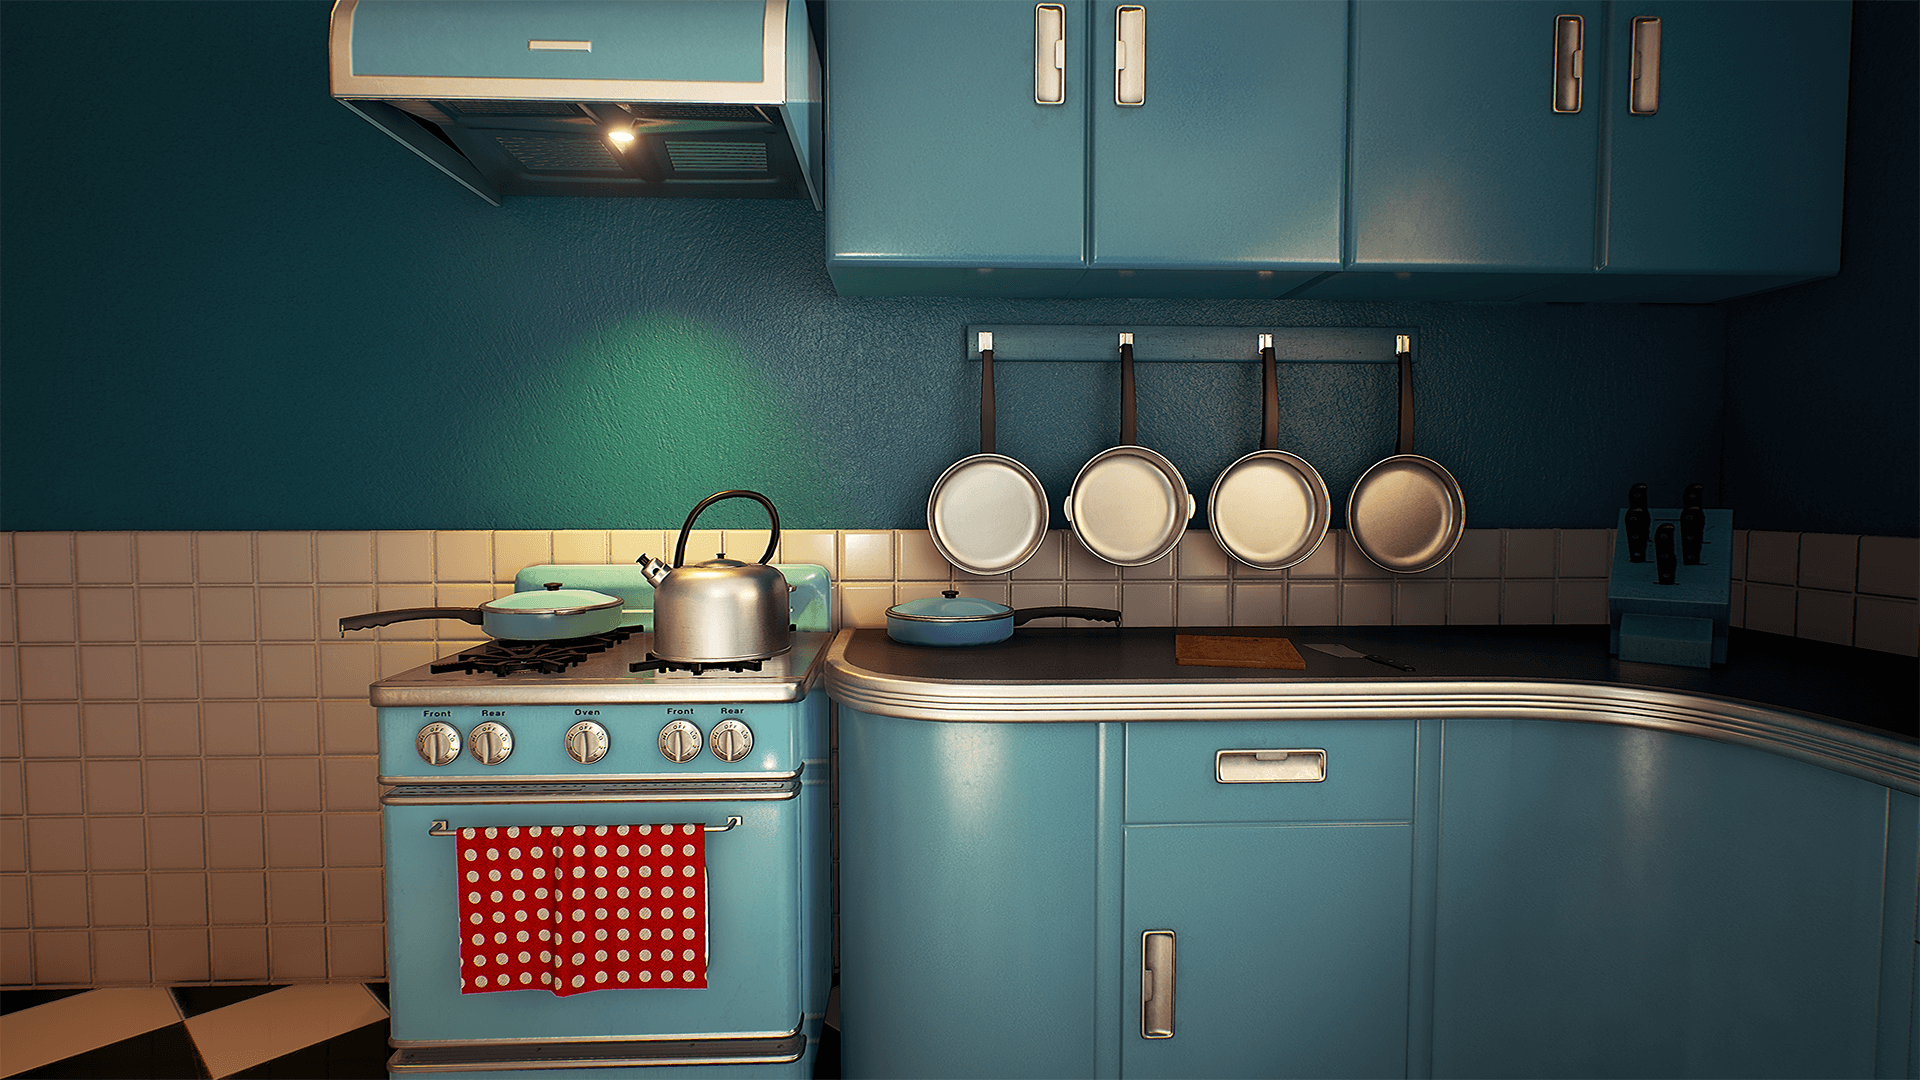 Customizable retro kitchen by nguyen cong thai in environments ue4 marketplace - Vintage kitchen ...